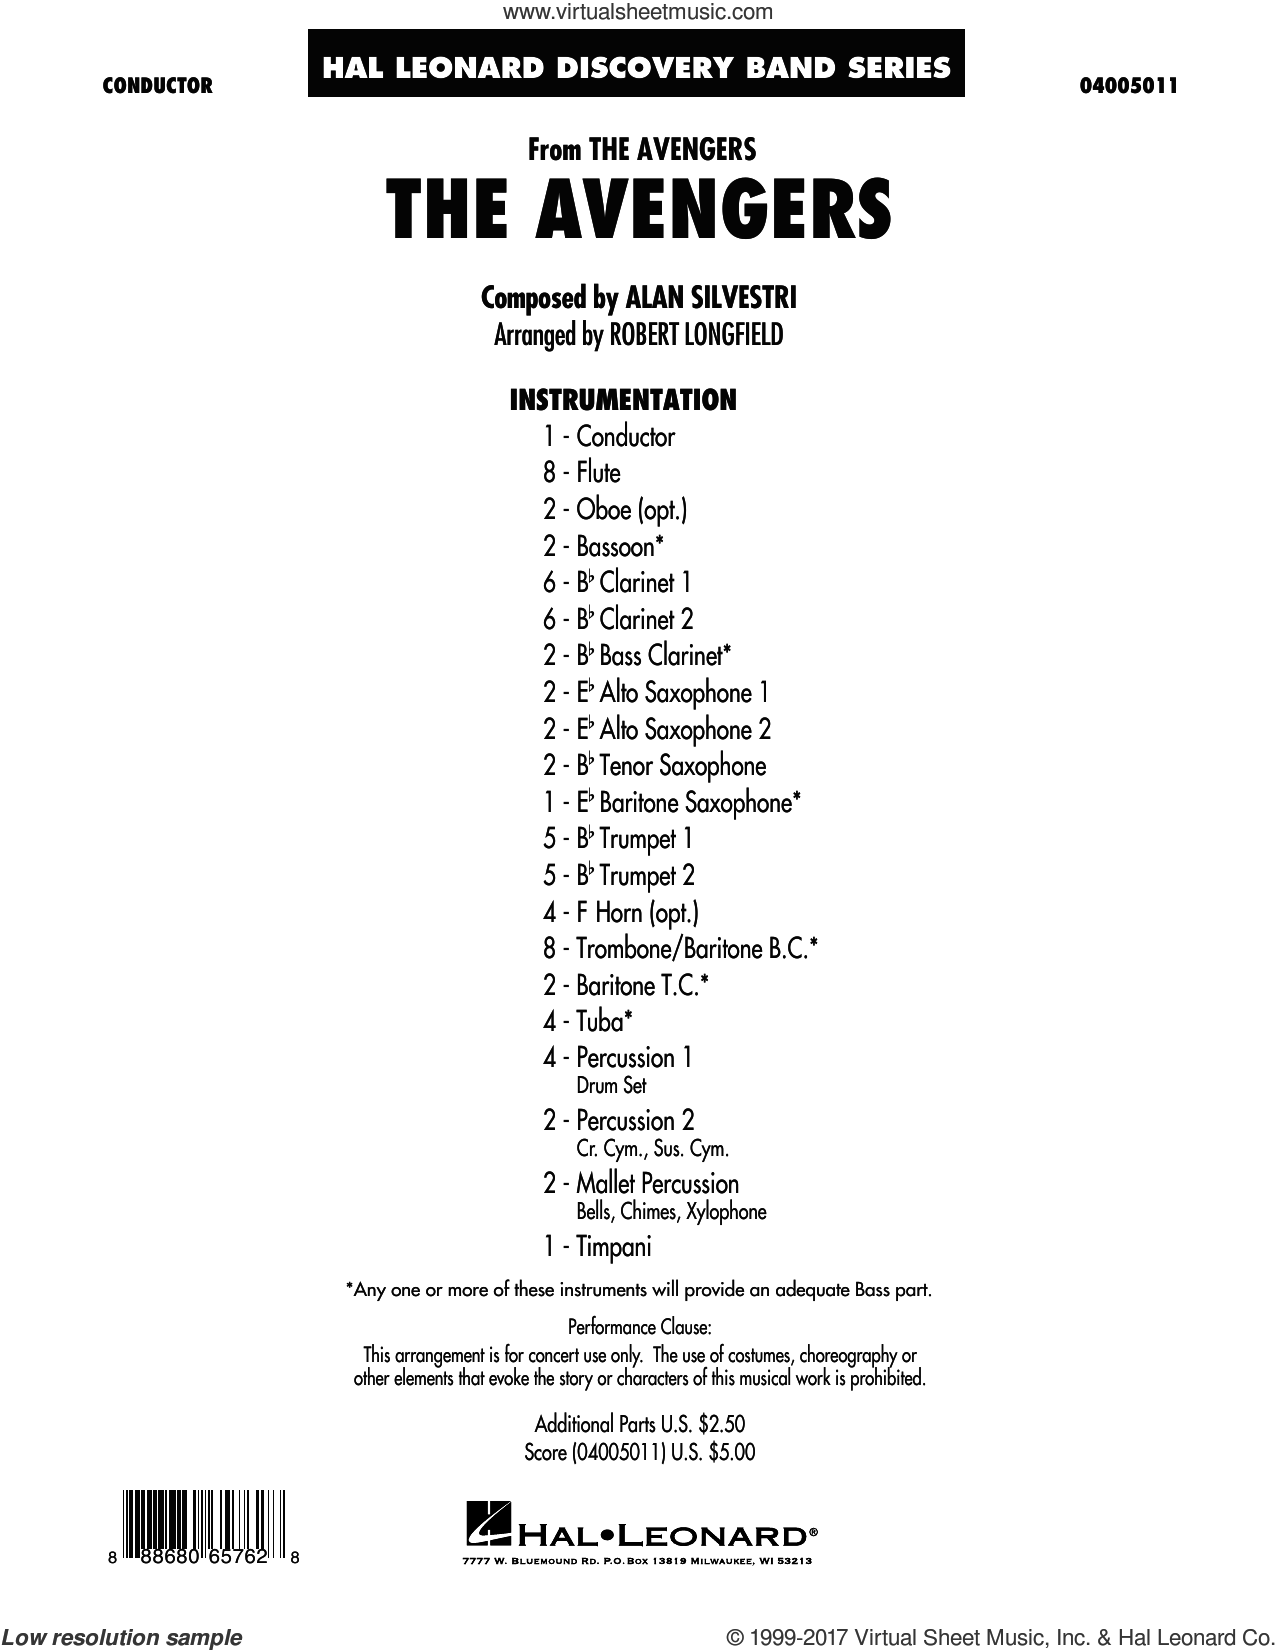 Longfield - The Avengers sheet music (complete collection) for concert band